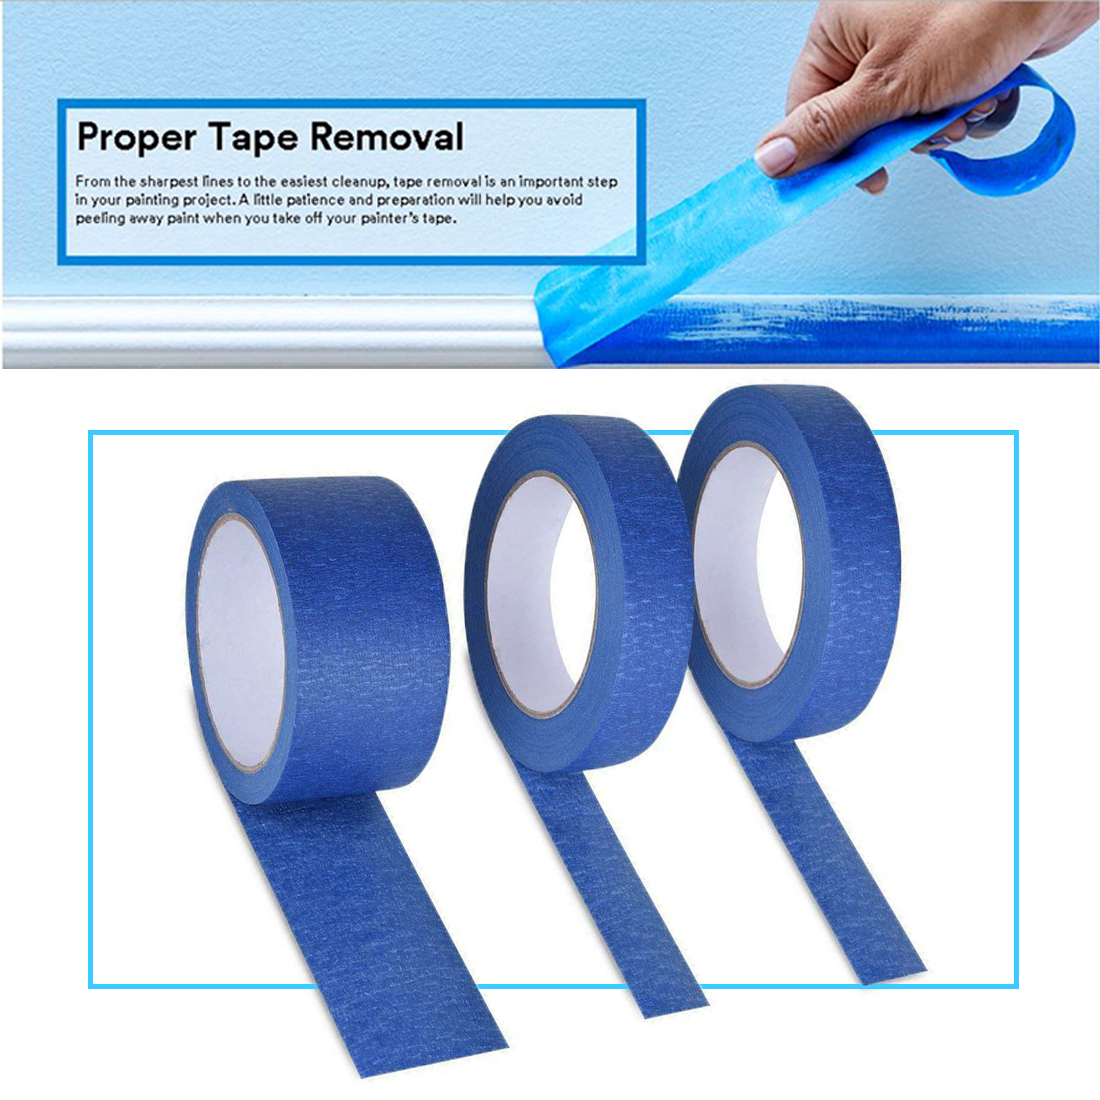 2019 New Blue Painter Tape Paper Adhesive House Painting Peeling Peel Tape Easy To Tear Masking Tape